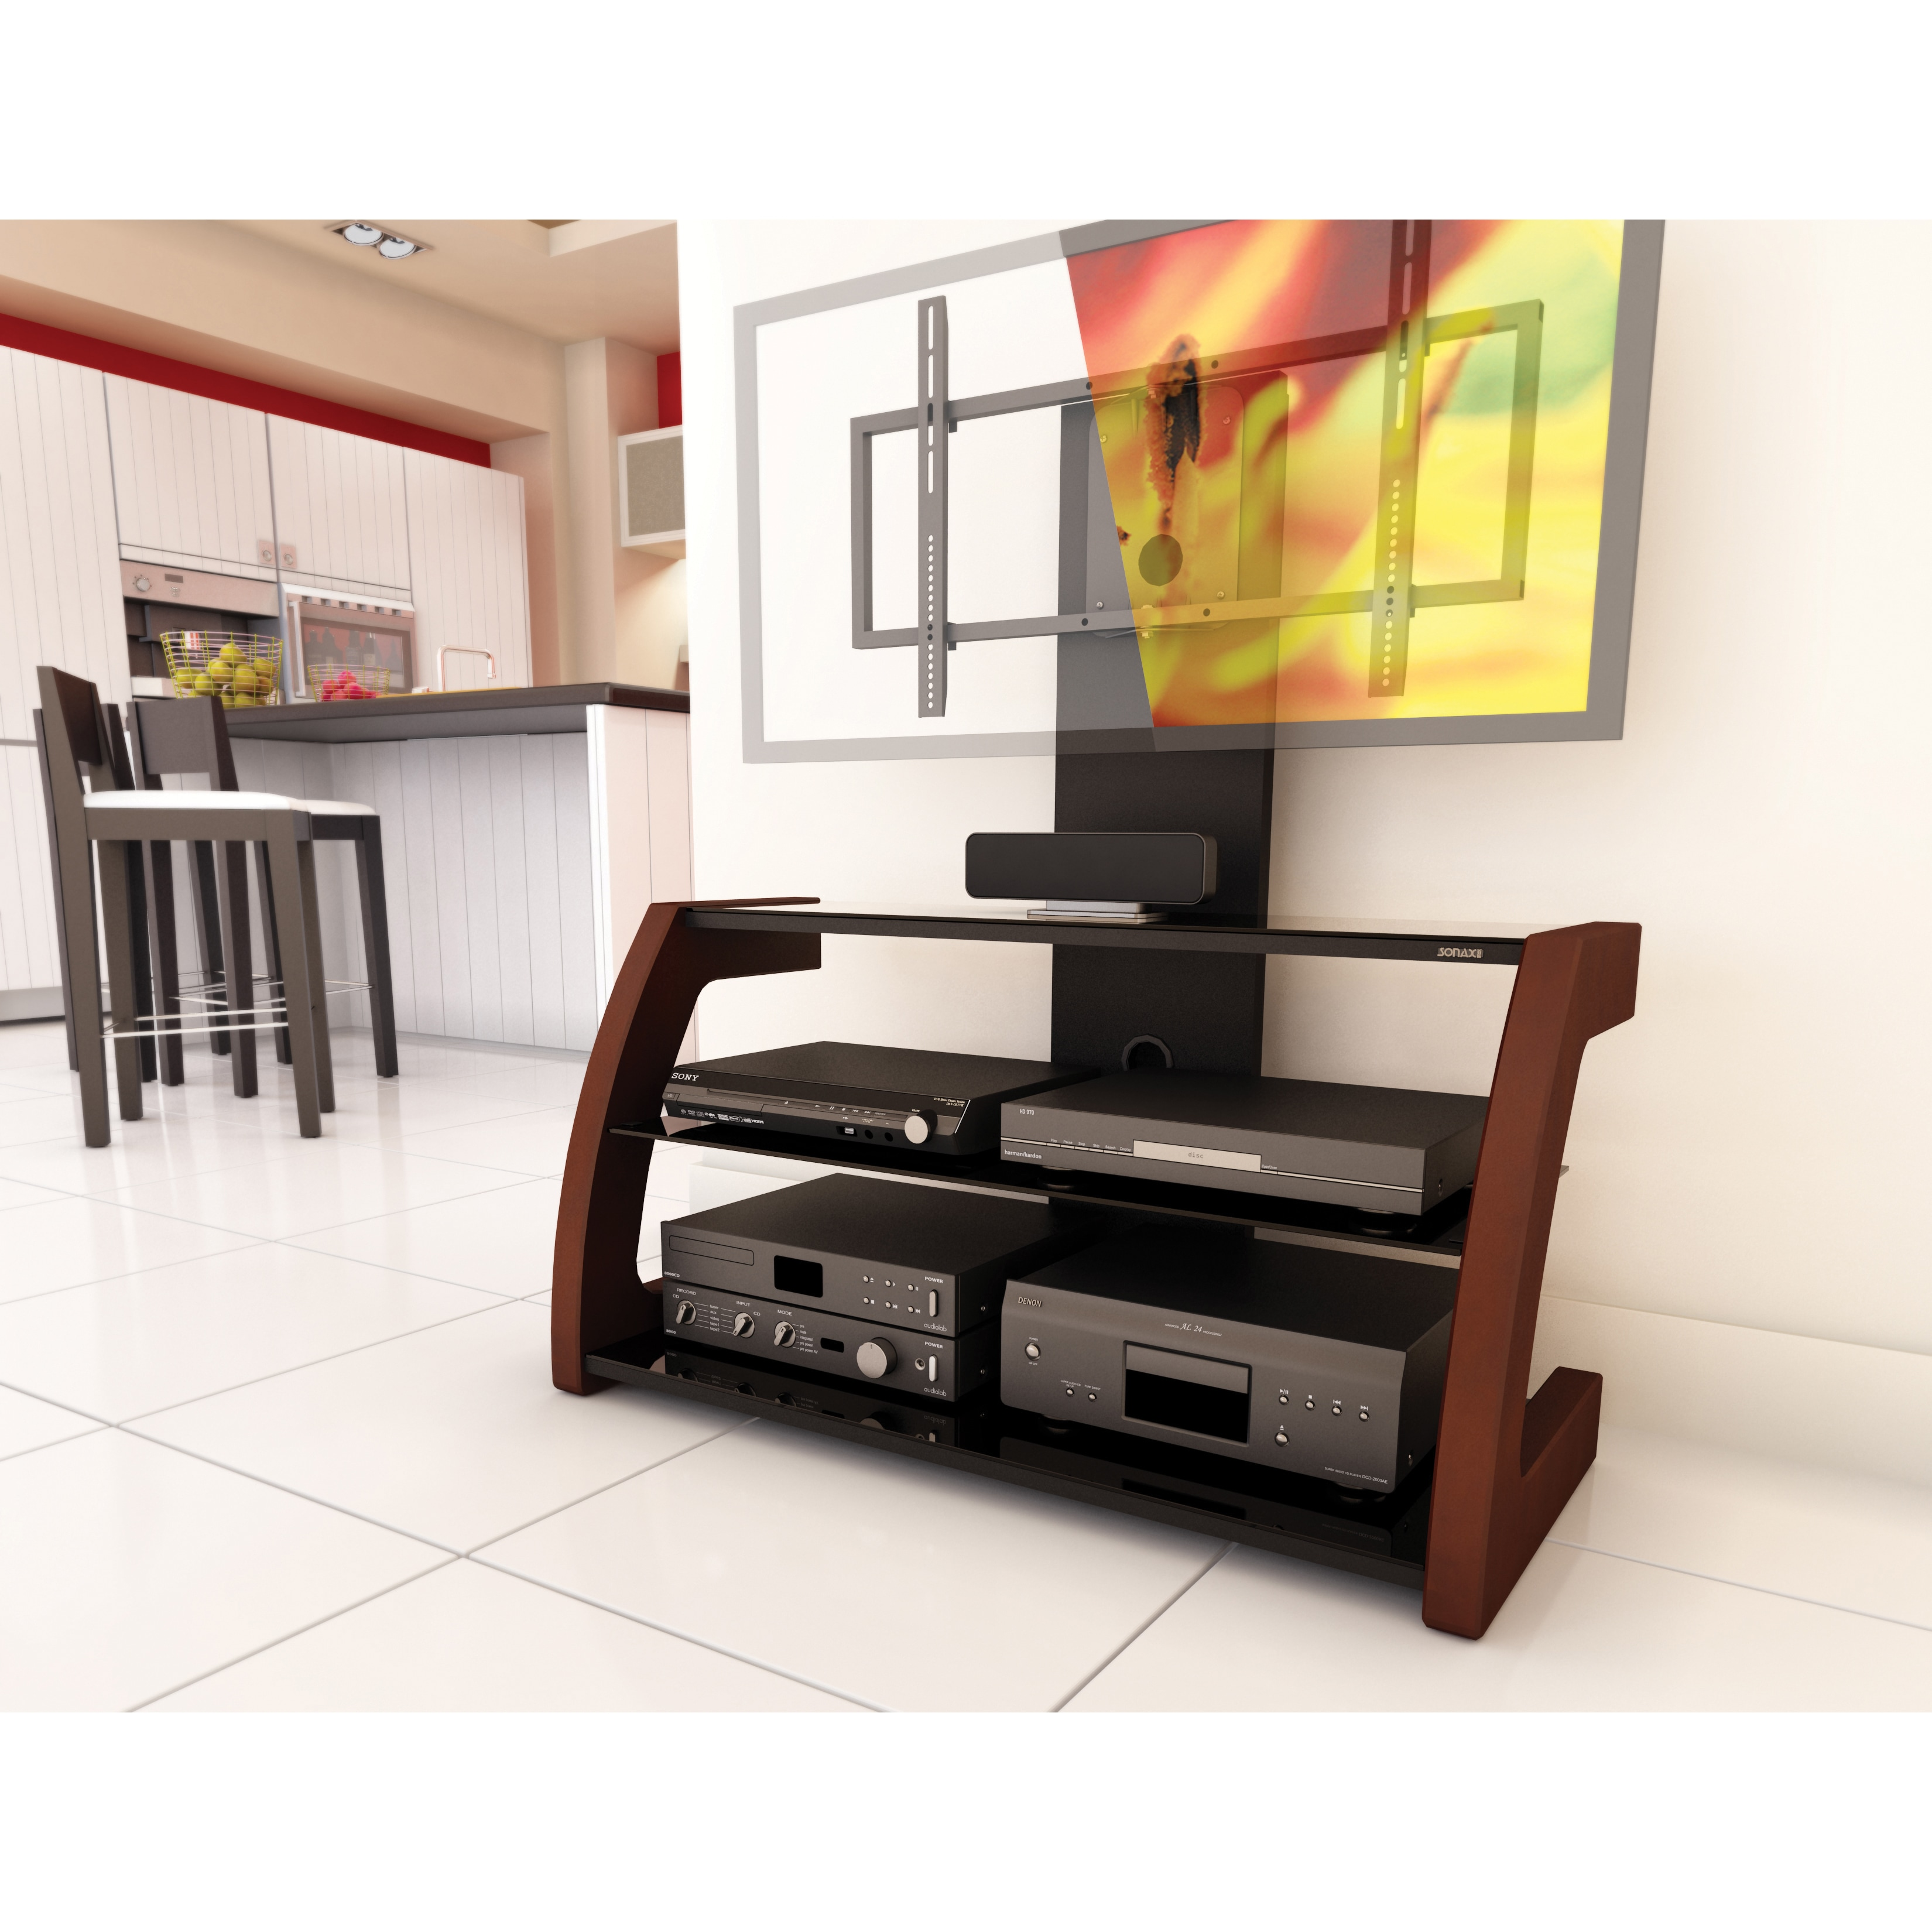 Sonax Milan Deep Espresso Hybrid Tv Stand With Solid Wood Uprights Free Shipping Today 7885968